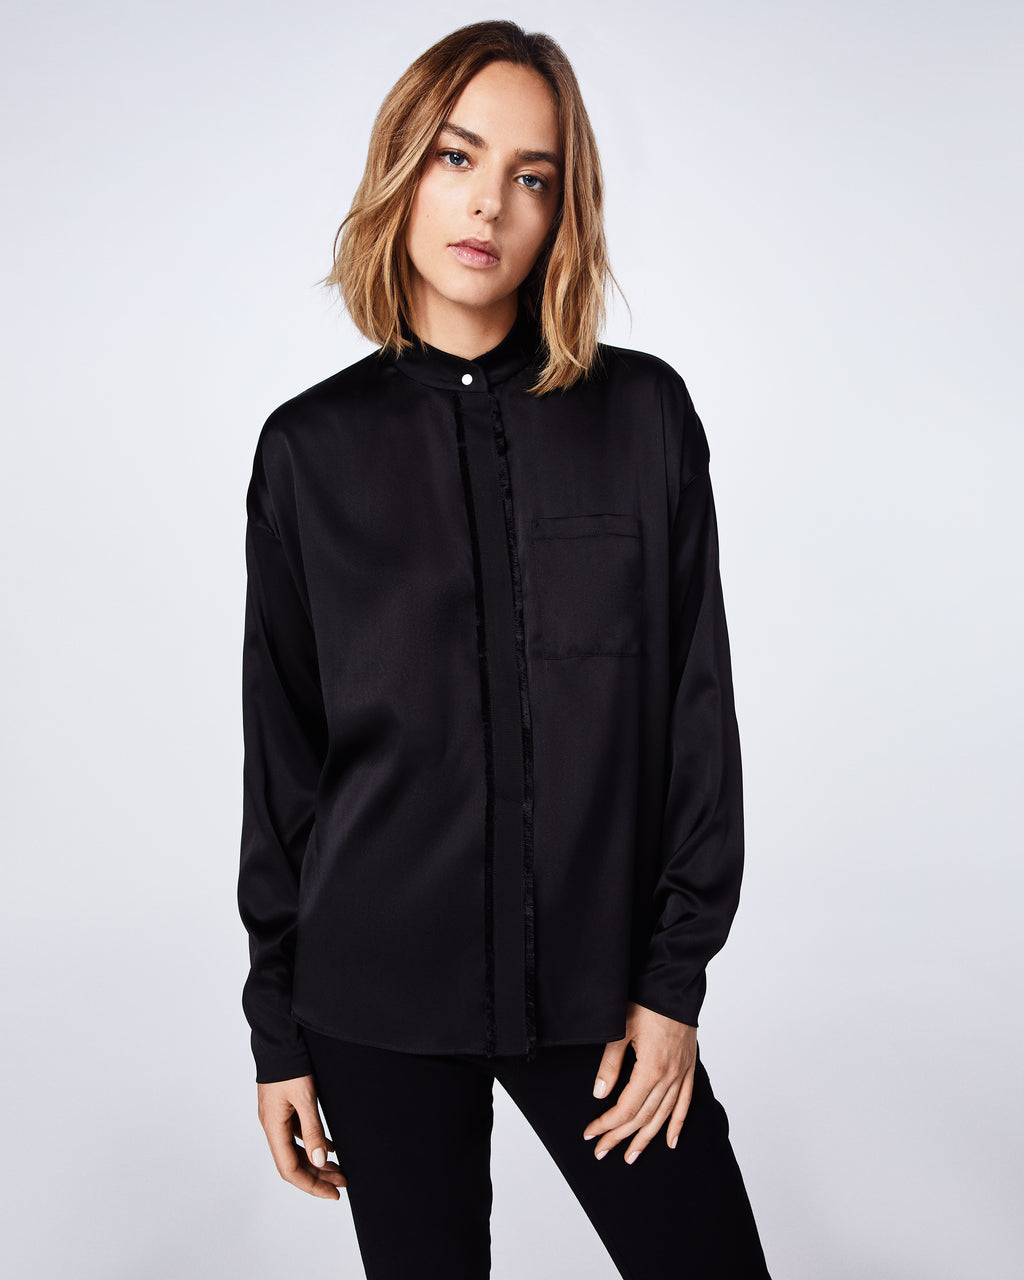 BF10350 - Stretch Charmeuse Button Down Top - tops - blouses - This long-sleeve button down charmeuse top is a classic. Whether you wear it with jeans or dress it up with black leather pant, this style is both cool and easy to wear